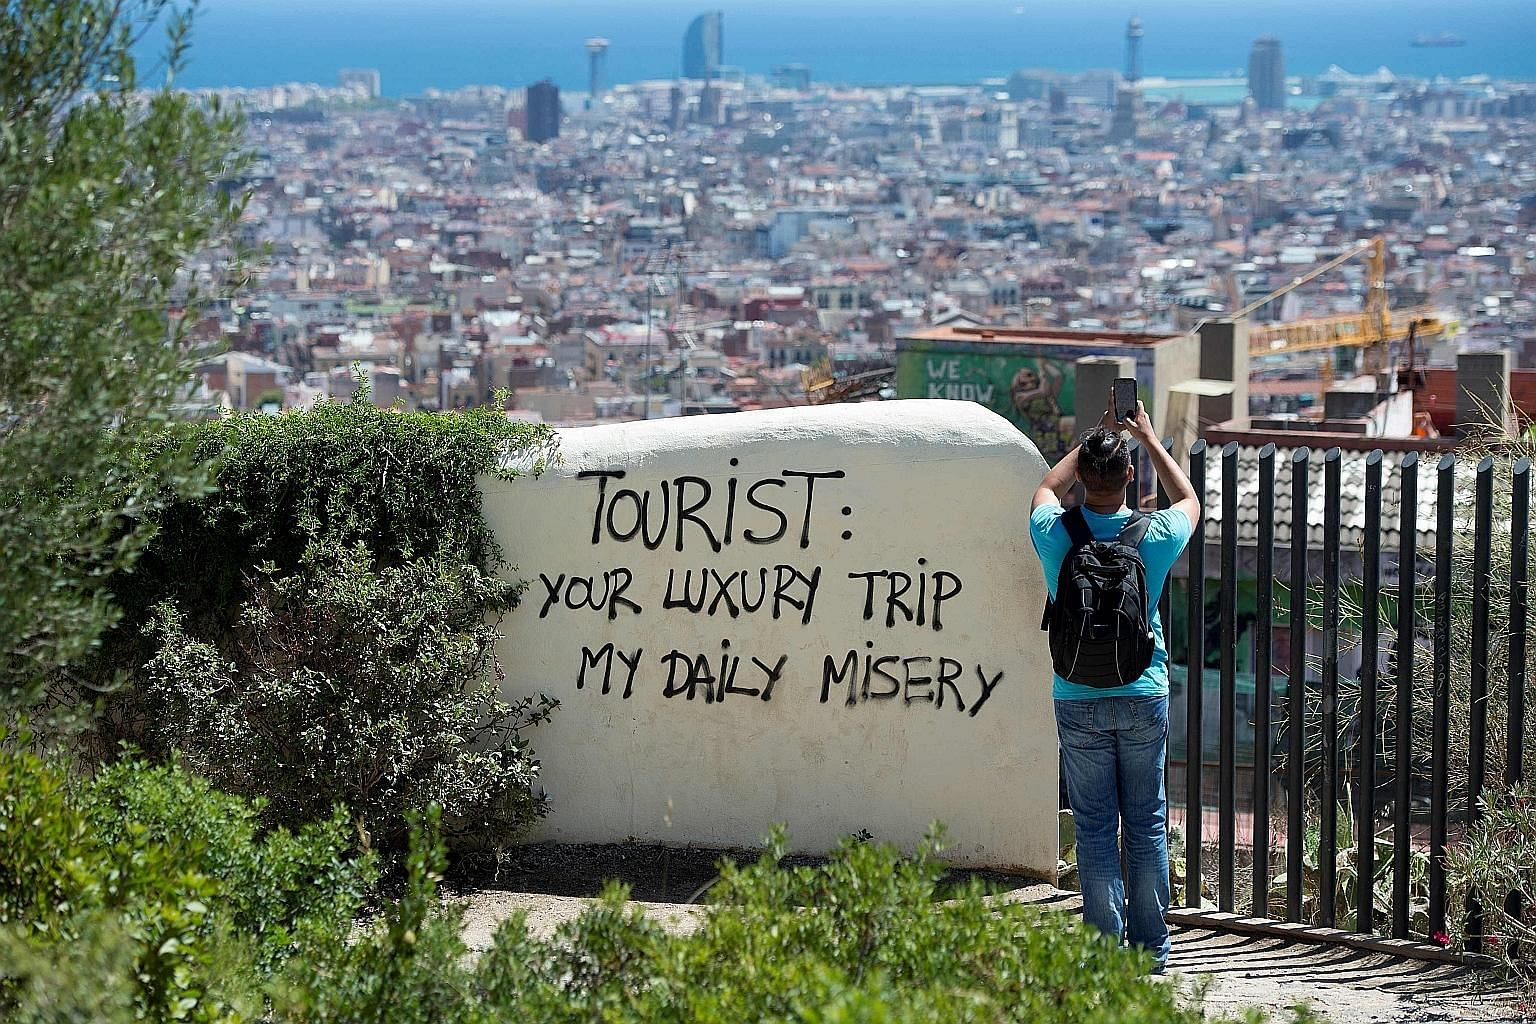 """Ignoring the """"less than friendly"""" graffiti, a tourist is focused on snapping a photo of Barcelona on Thursday."""